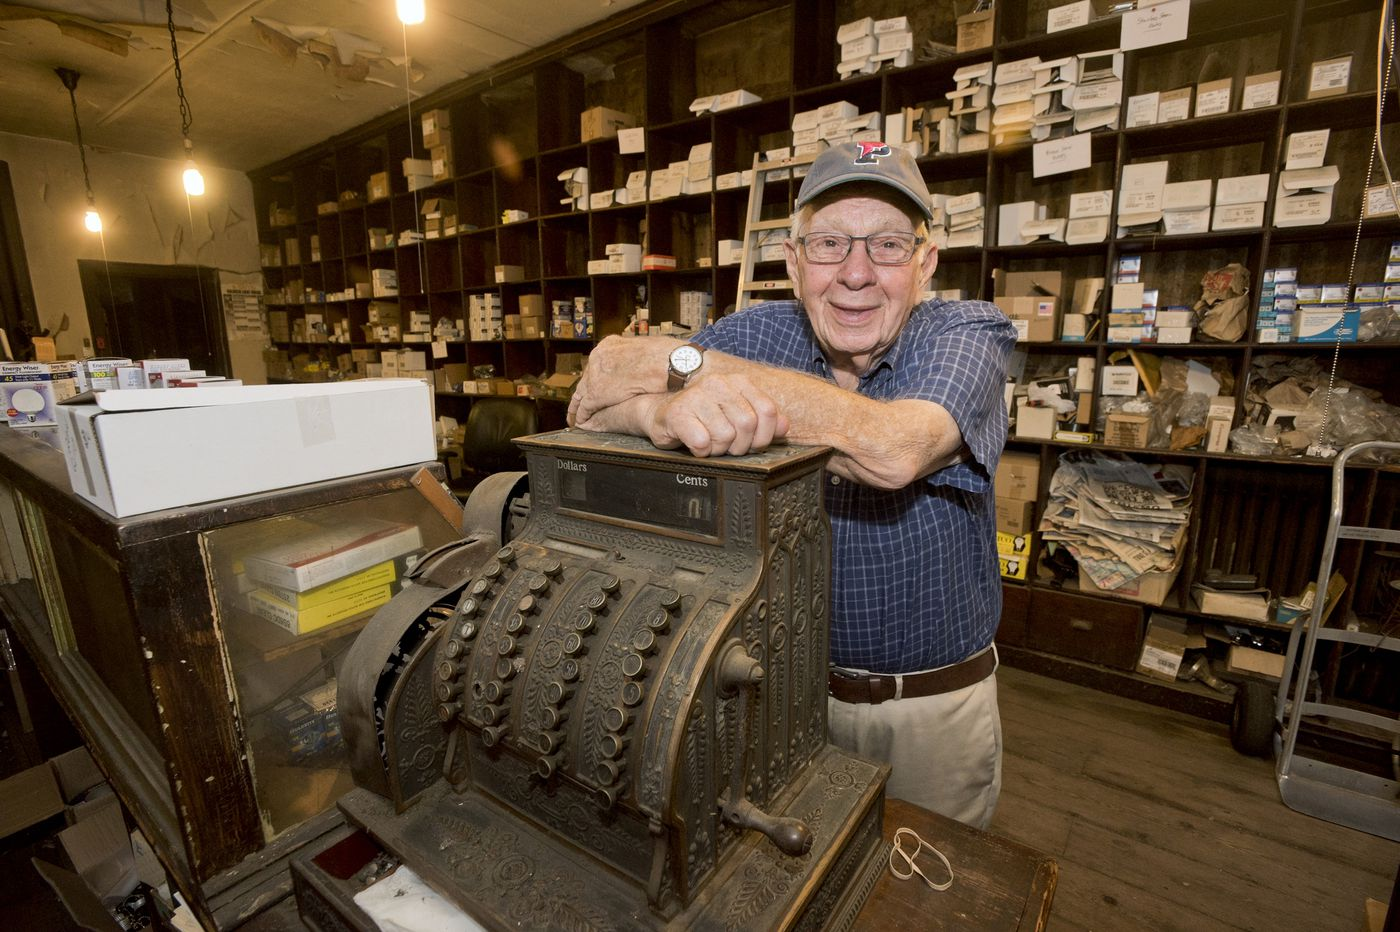 100-year-old 'lamp company' in Old City turns off lights one last time